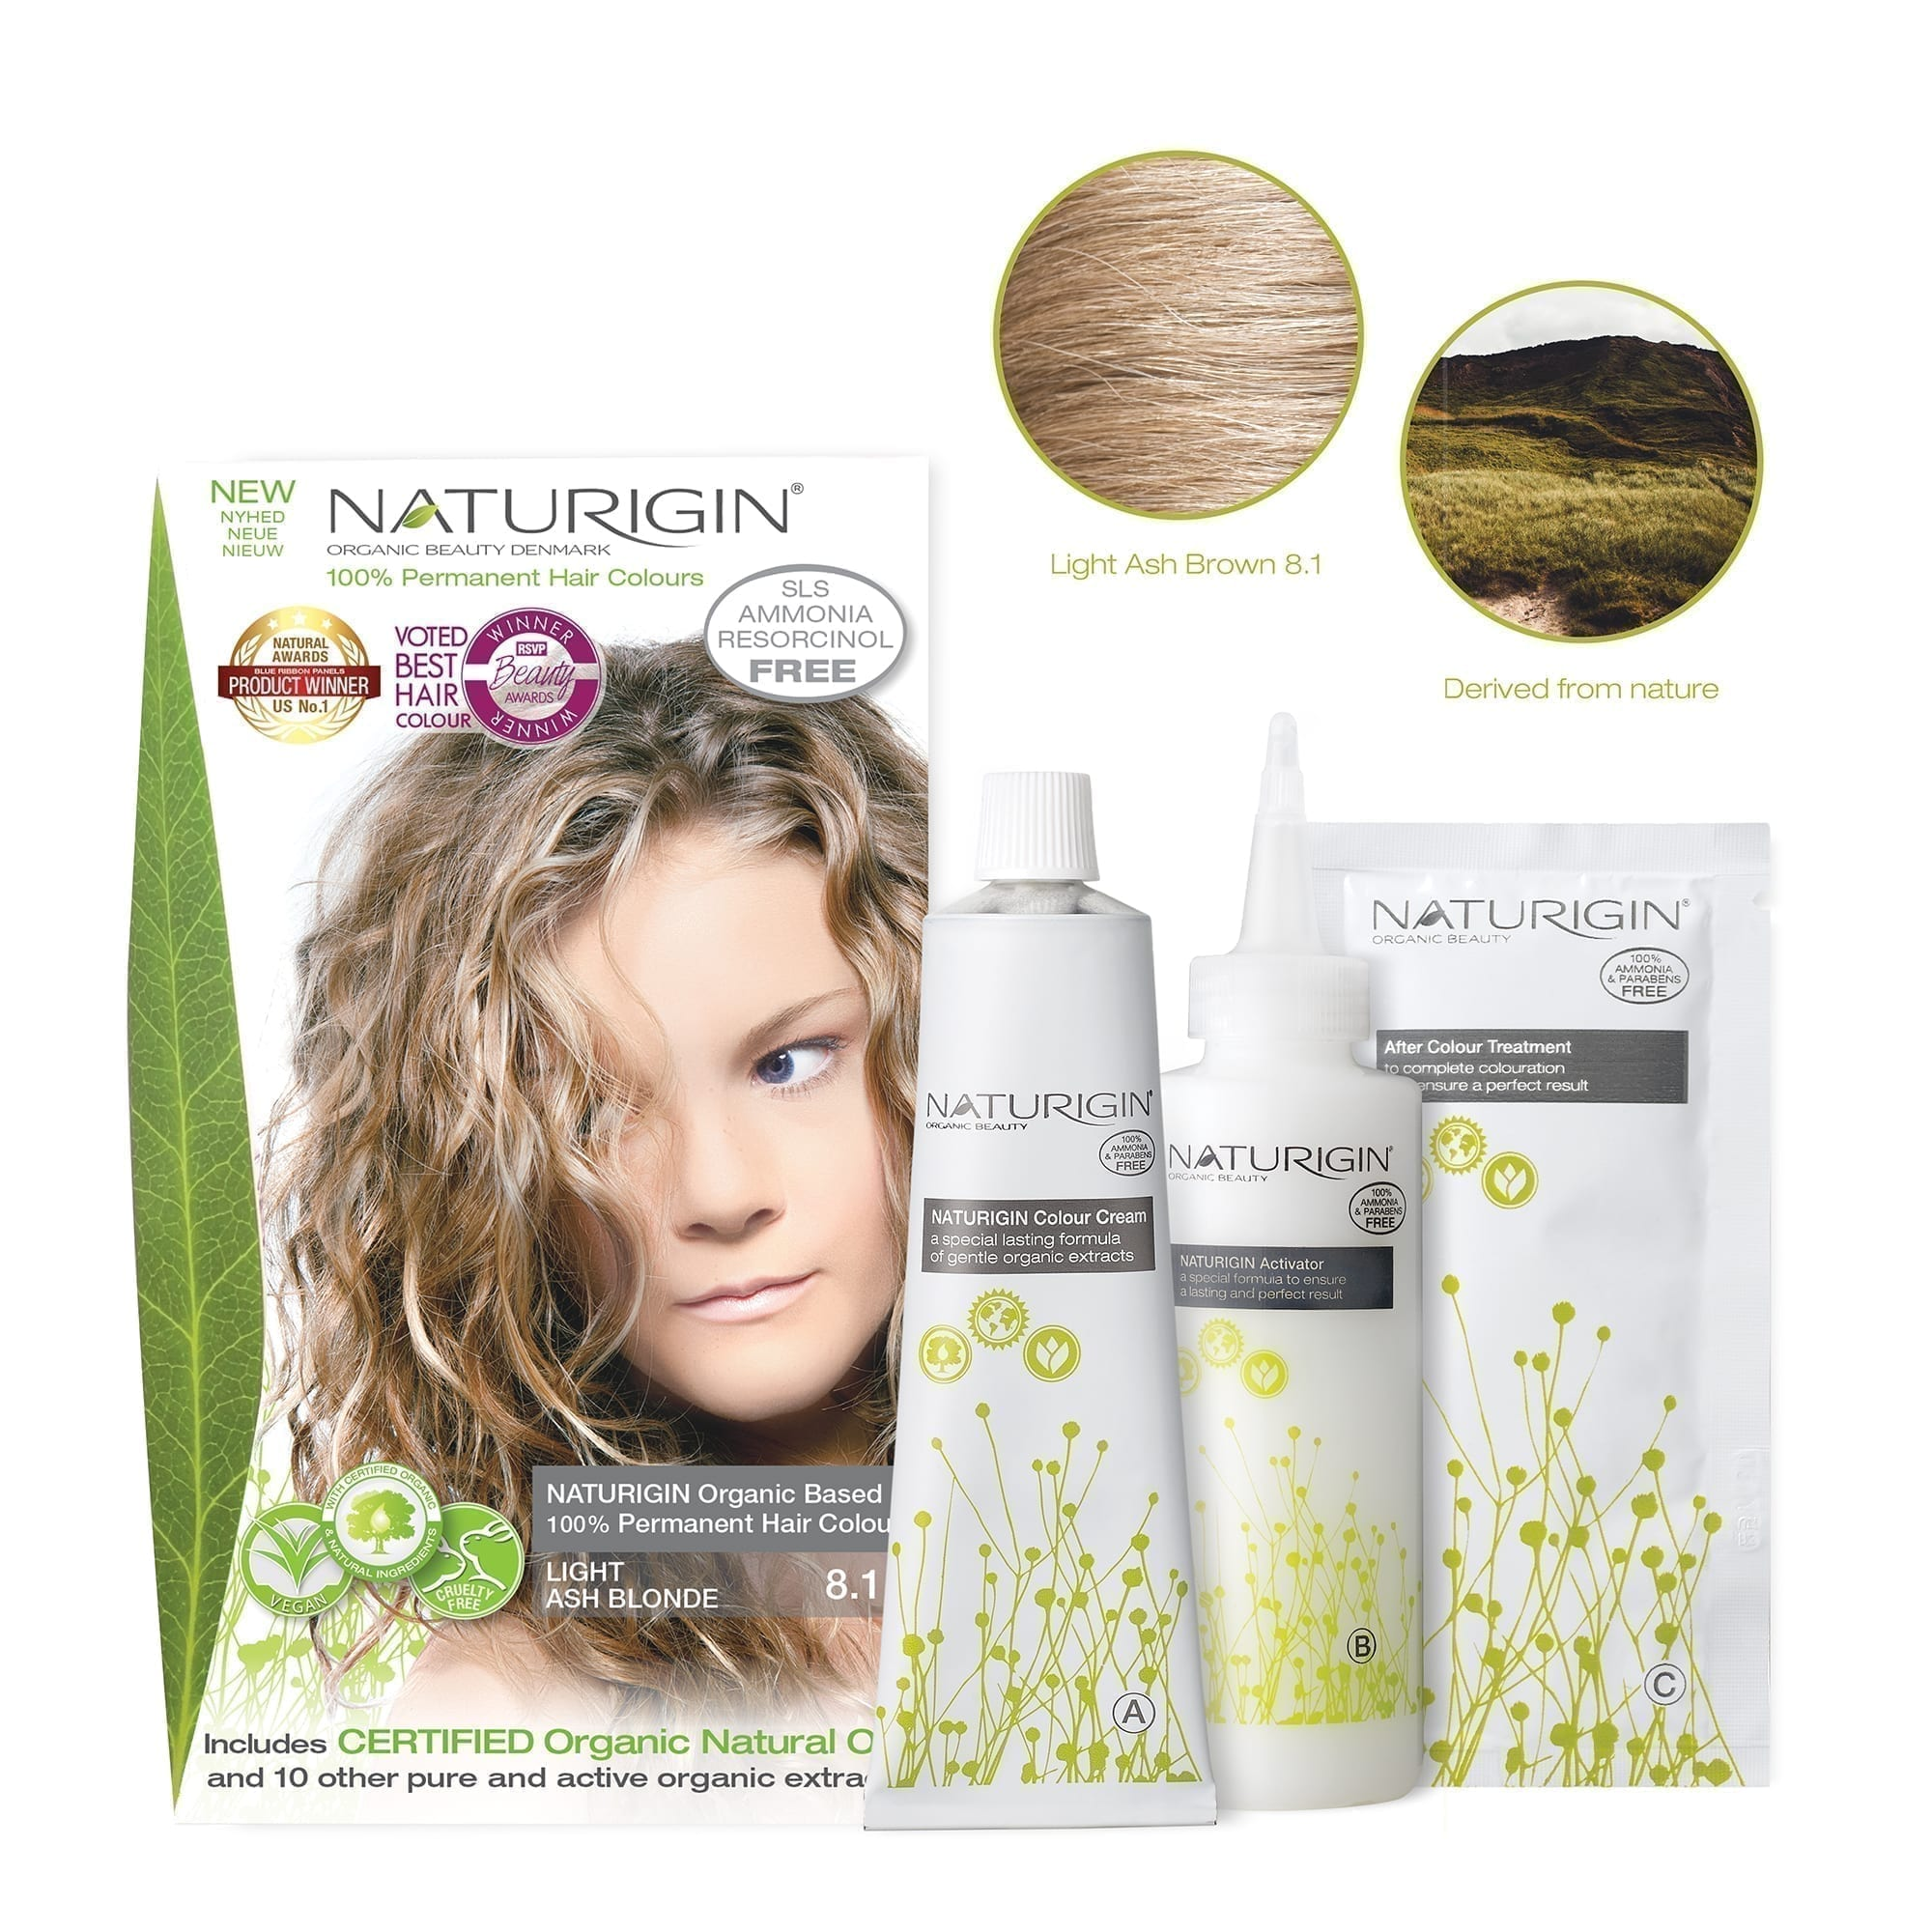 NATURIGIN-8.1-Light ash blonde